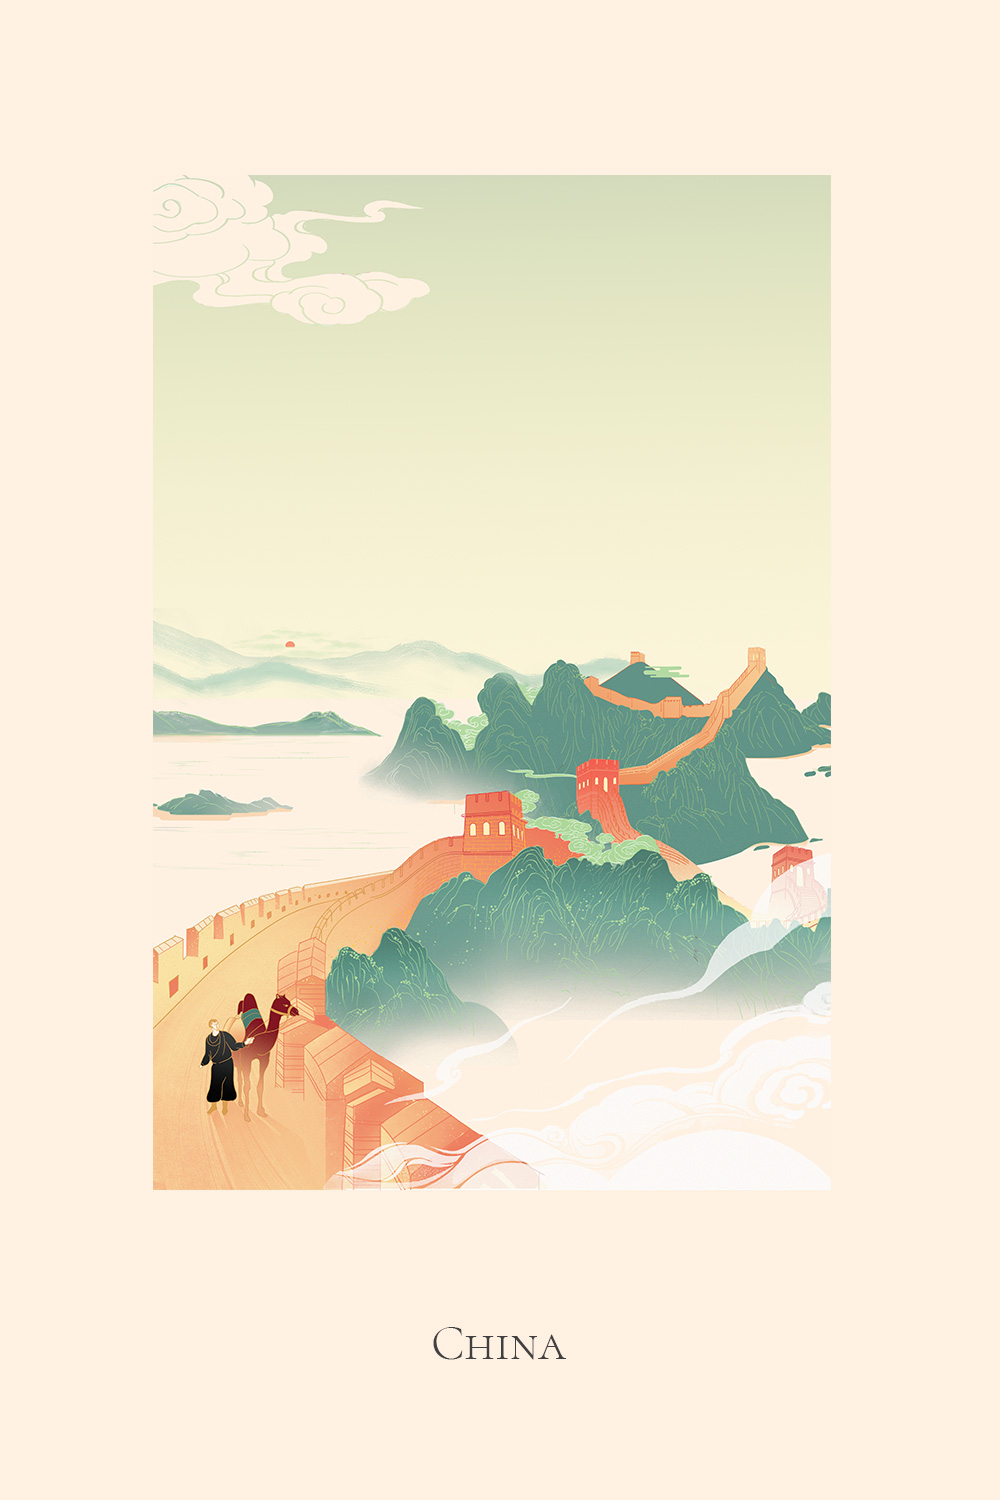 Illustration of a man riding a camel on the Great Wall of China